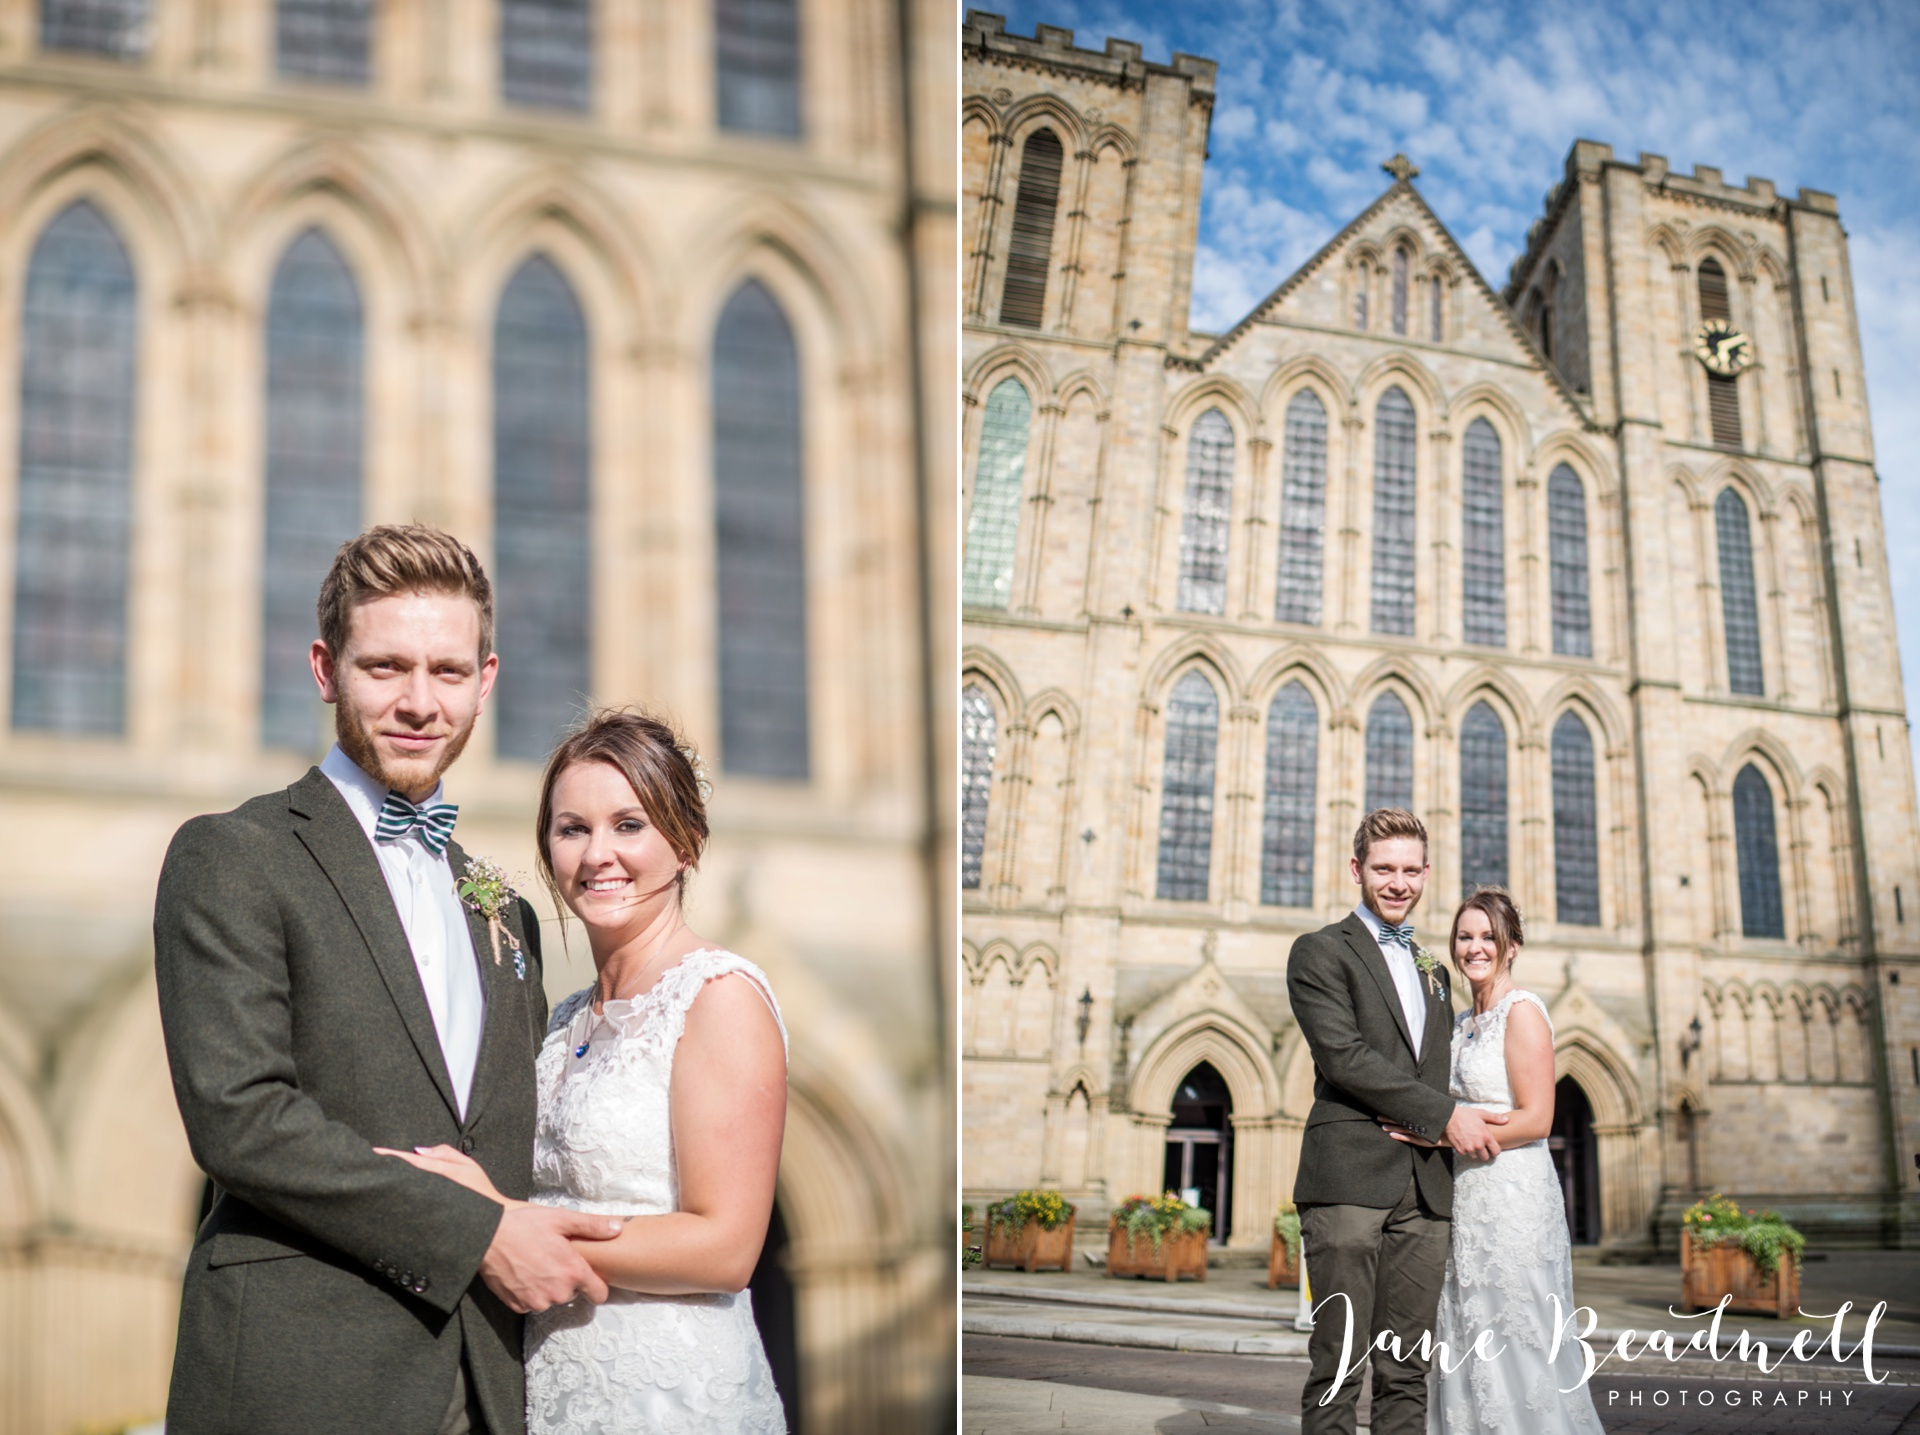 Jane Beadnell fine art wedding photographer The Old Deanery Ripon_0068